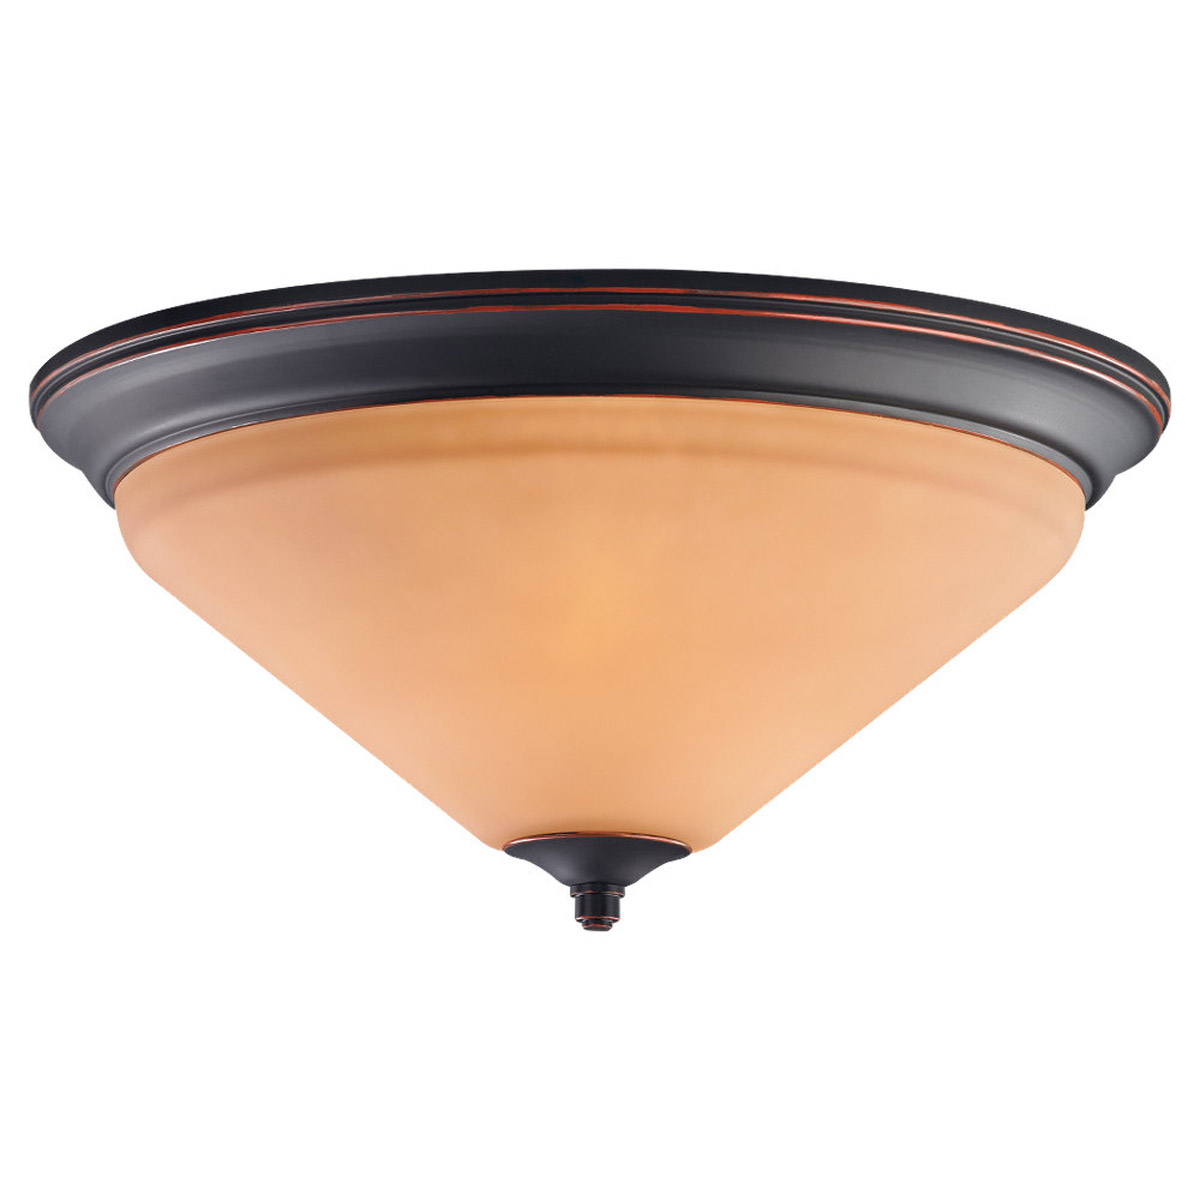 Sea Gull Lighting Belair 3 Light Flush Mount in Vintage Brown 75791-862